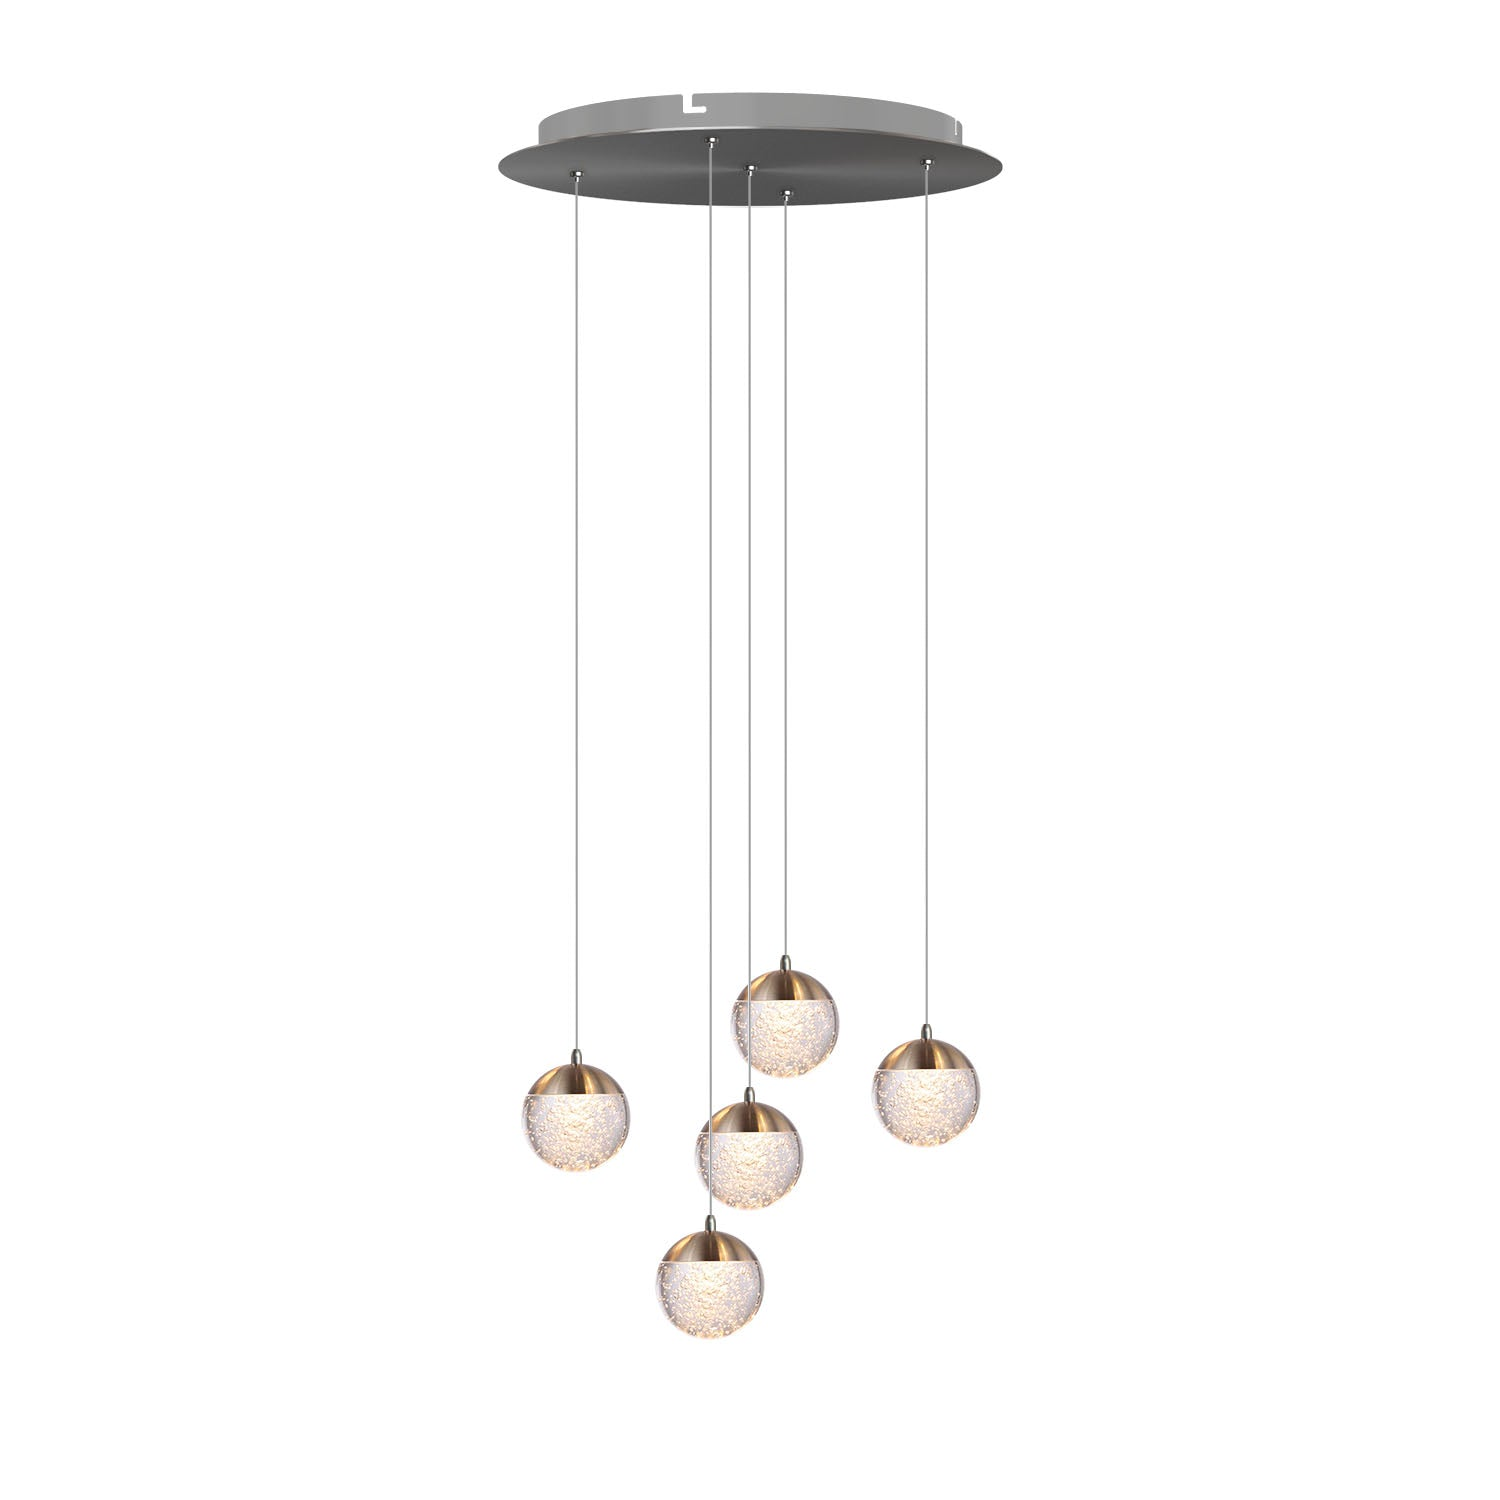 Galaxy 5-light LED mini pendant